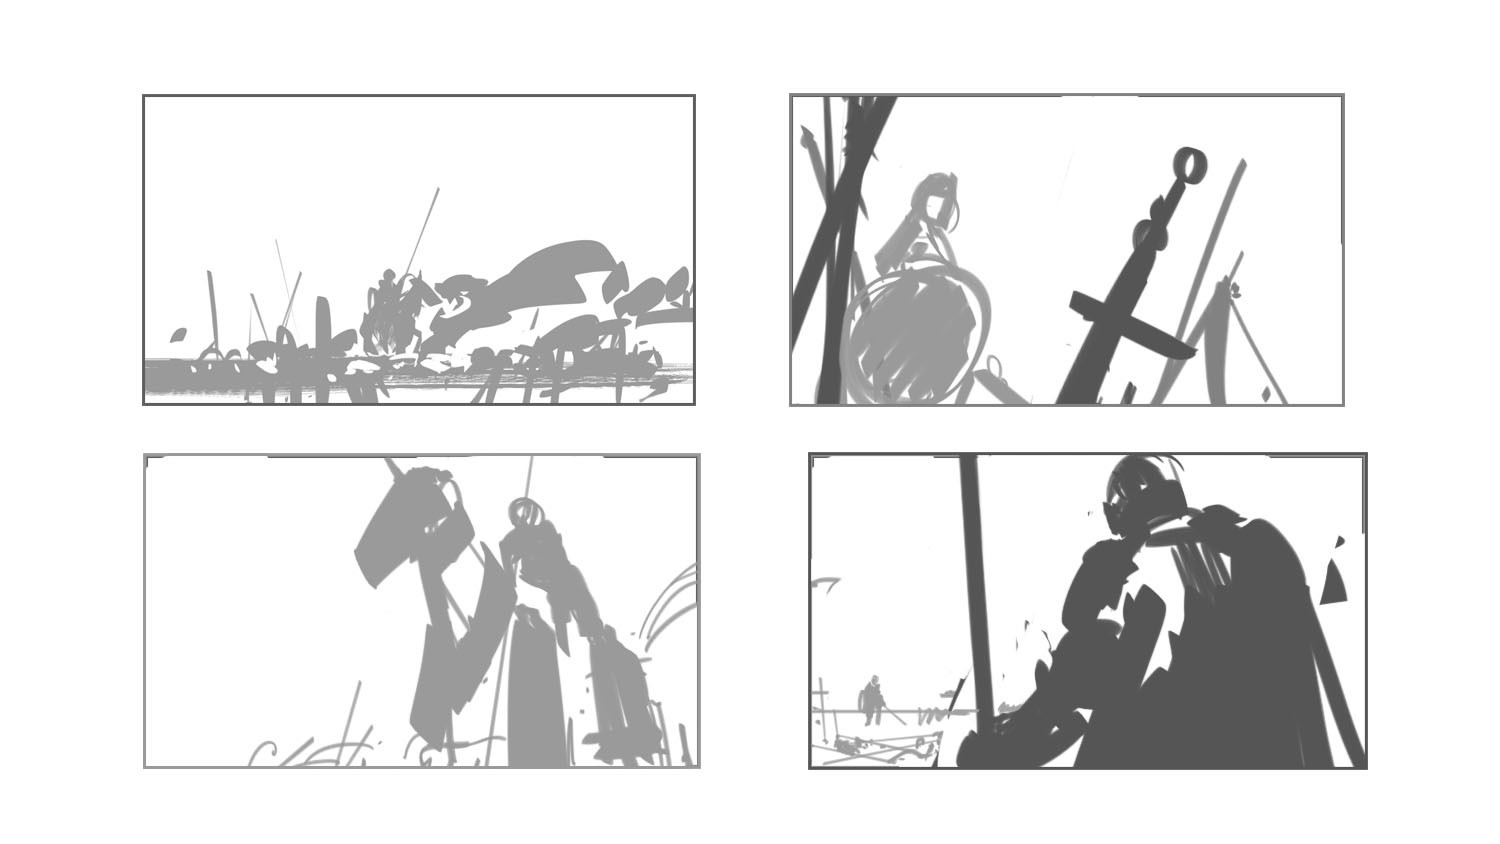 Richard anderson flaptraps art page layouts 01